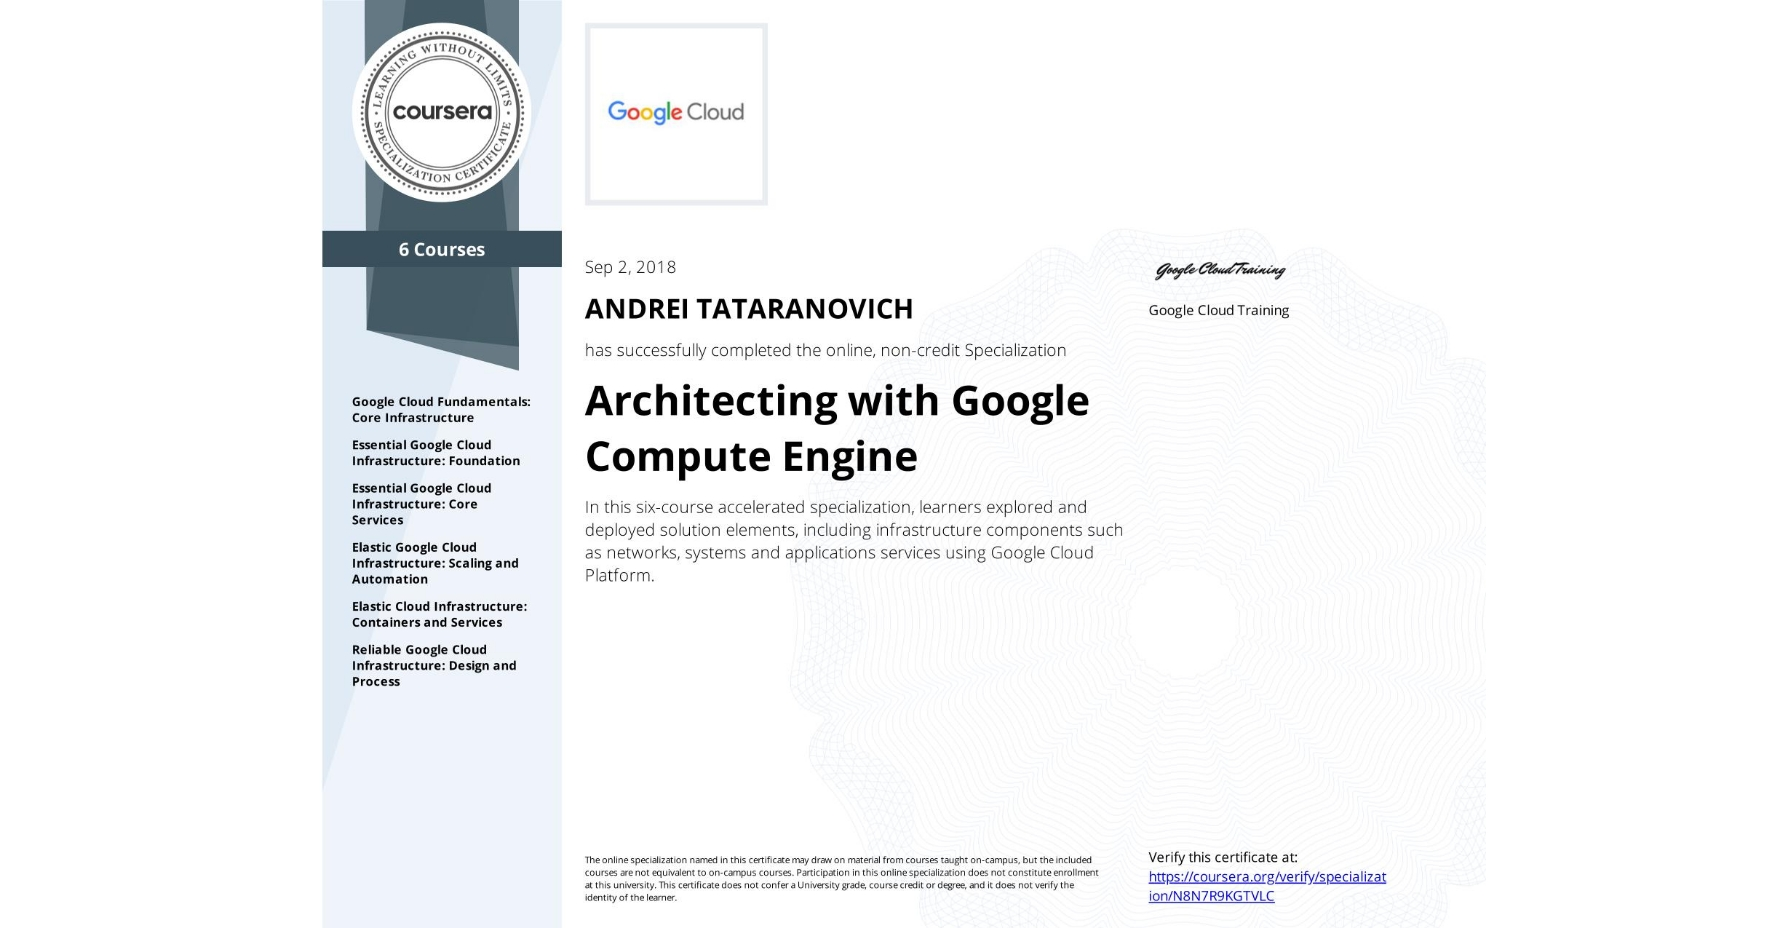 View certificate for ANDREI TATARANOVICH, Architecting with Google Compute Engine, offered through Coursera. In this six-course accelerated specialization, learners explored and deployed solution elements, including infrastructure components such as networks, systems and applications services using Google Cloud Platform.